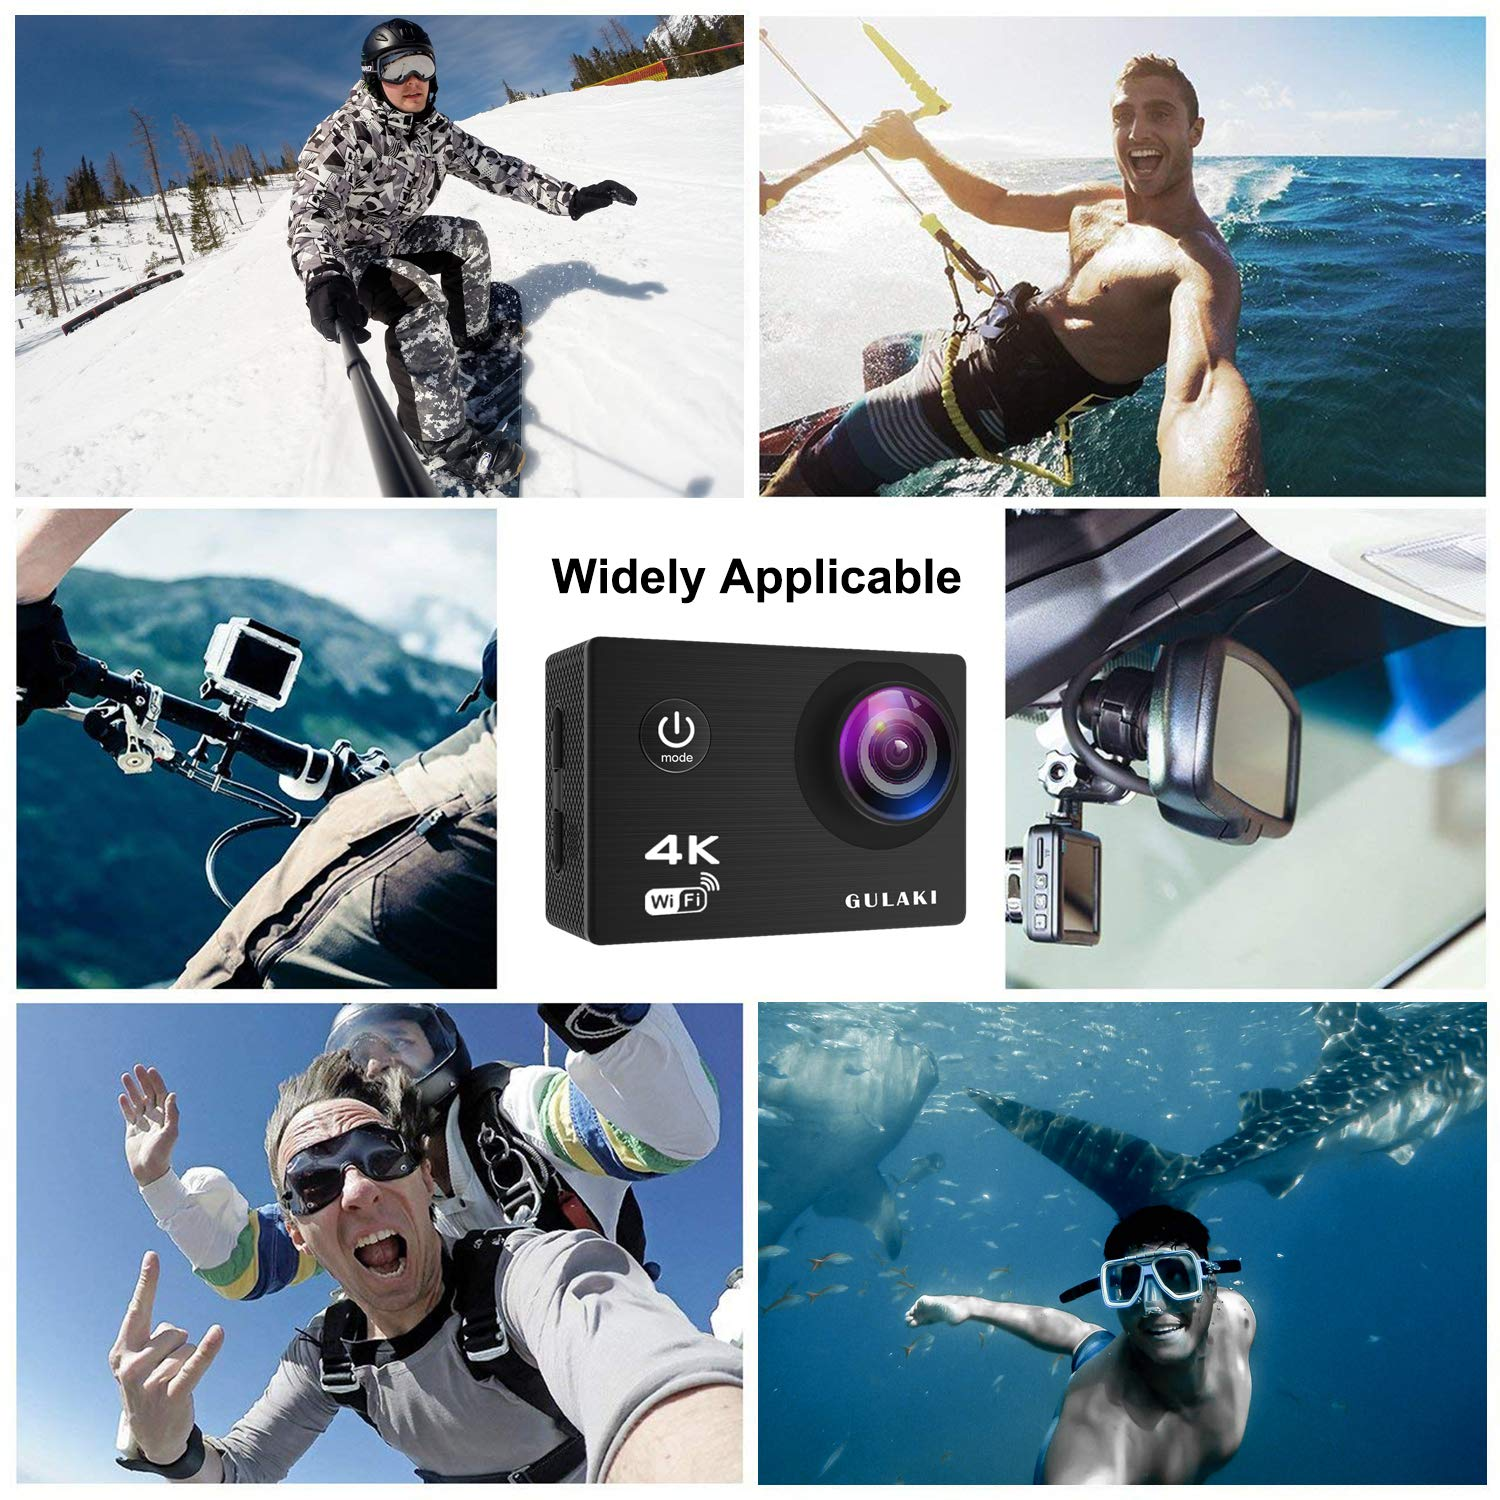 Sports Action Camera, GULAKI 4K 16MP Wi-Fi Action Cam Waterproof 40M 2.0 Inch LCD Screen 170°Wide-Angle with Sony Sensor - 2 PCs 1050mAh Batteries and 2.4GHz Remote Accessories Kits